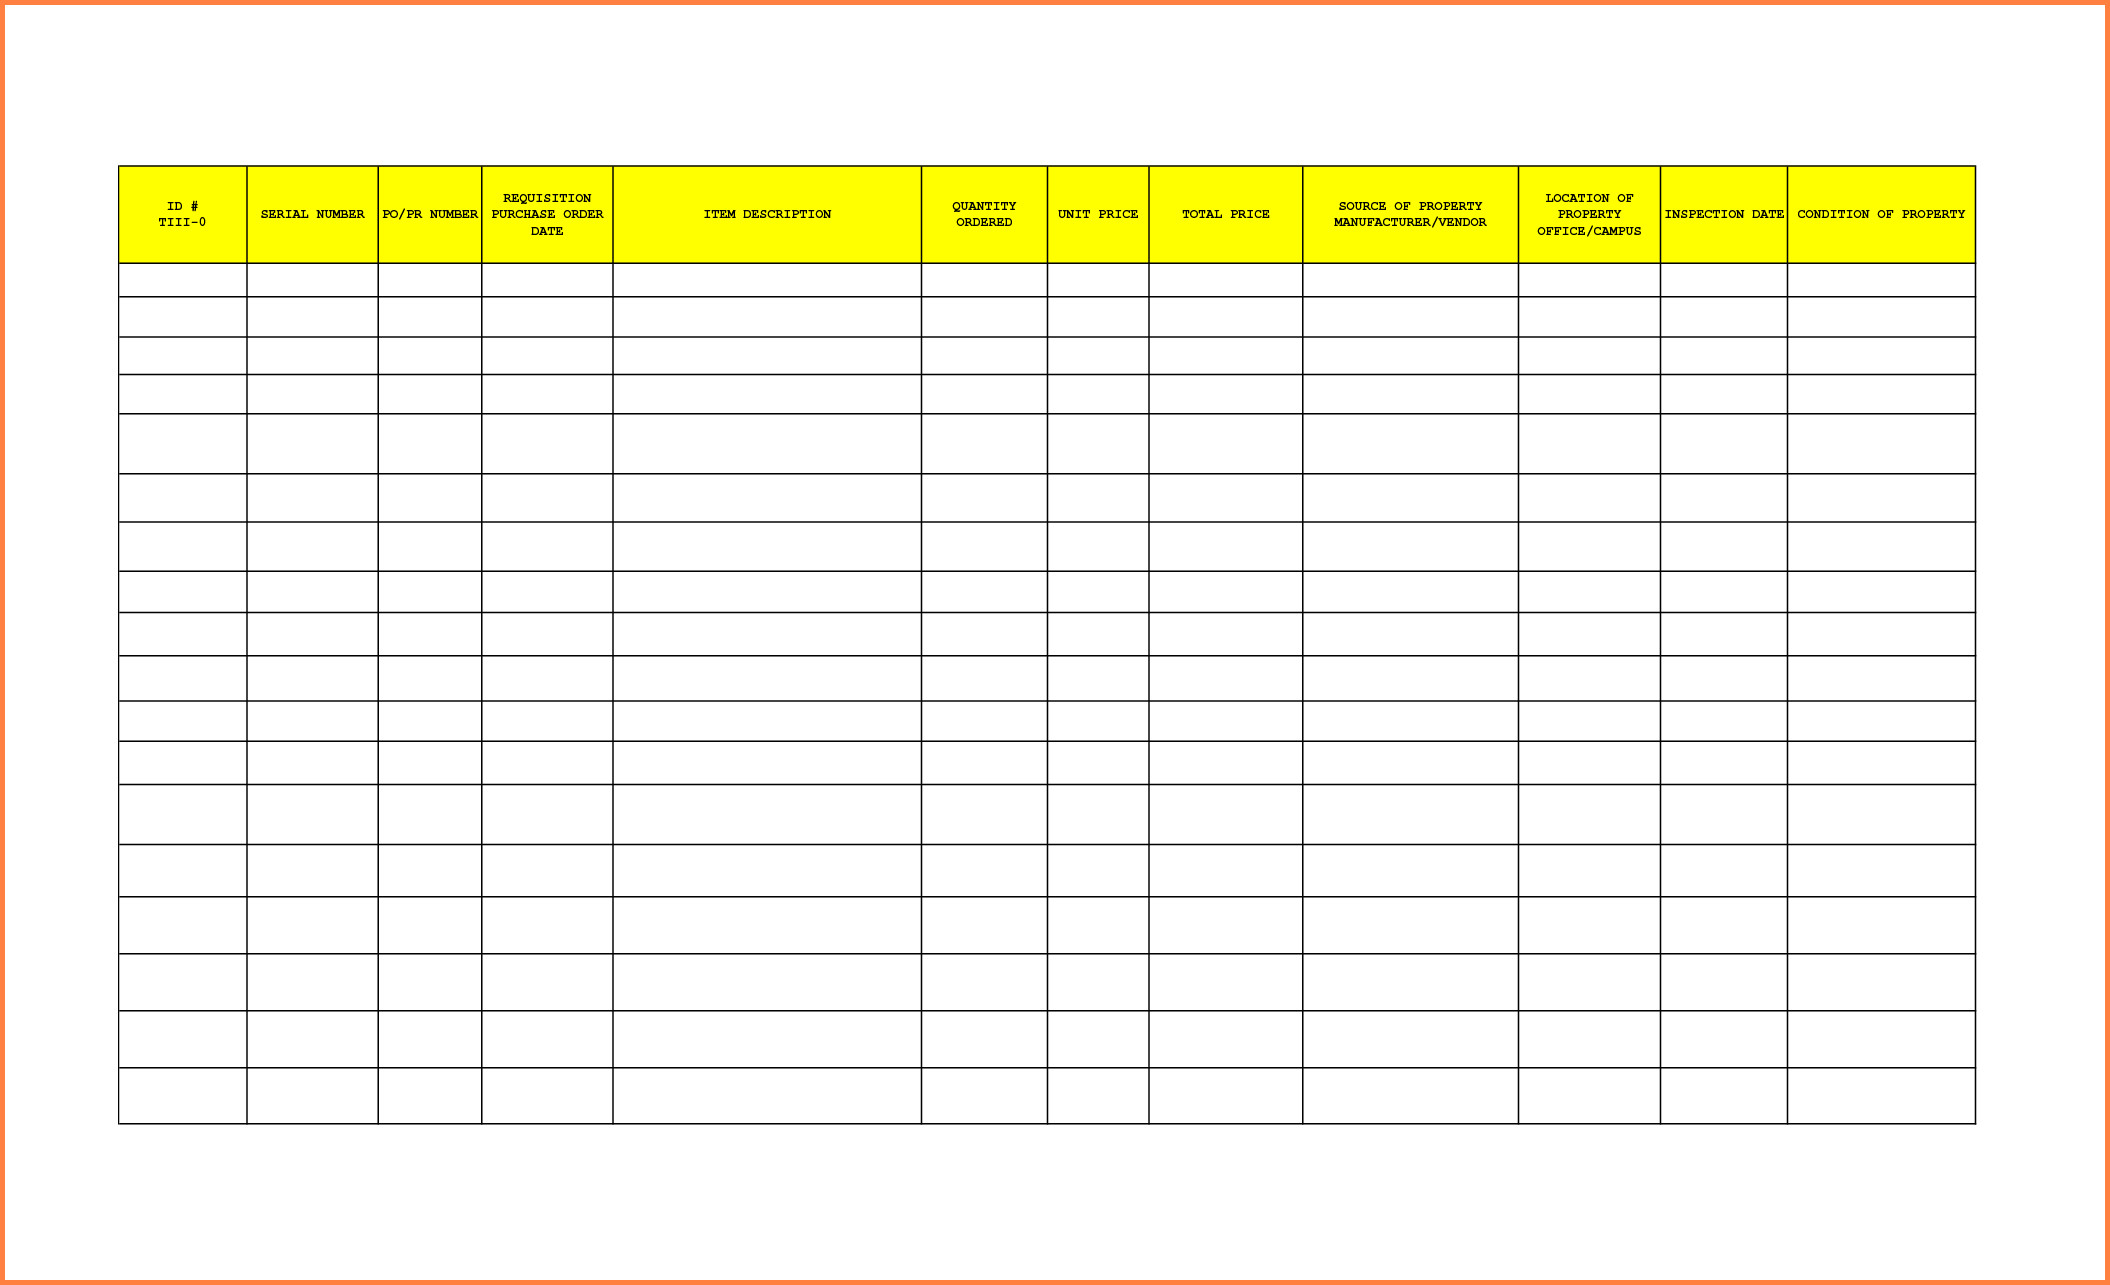 Office Supplies Inventory Template 8 Office Supplies Inventory Spreadsheet